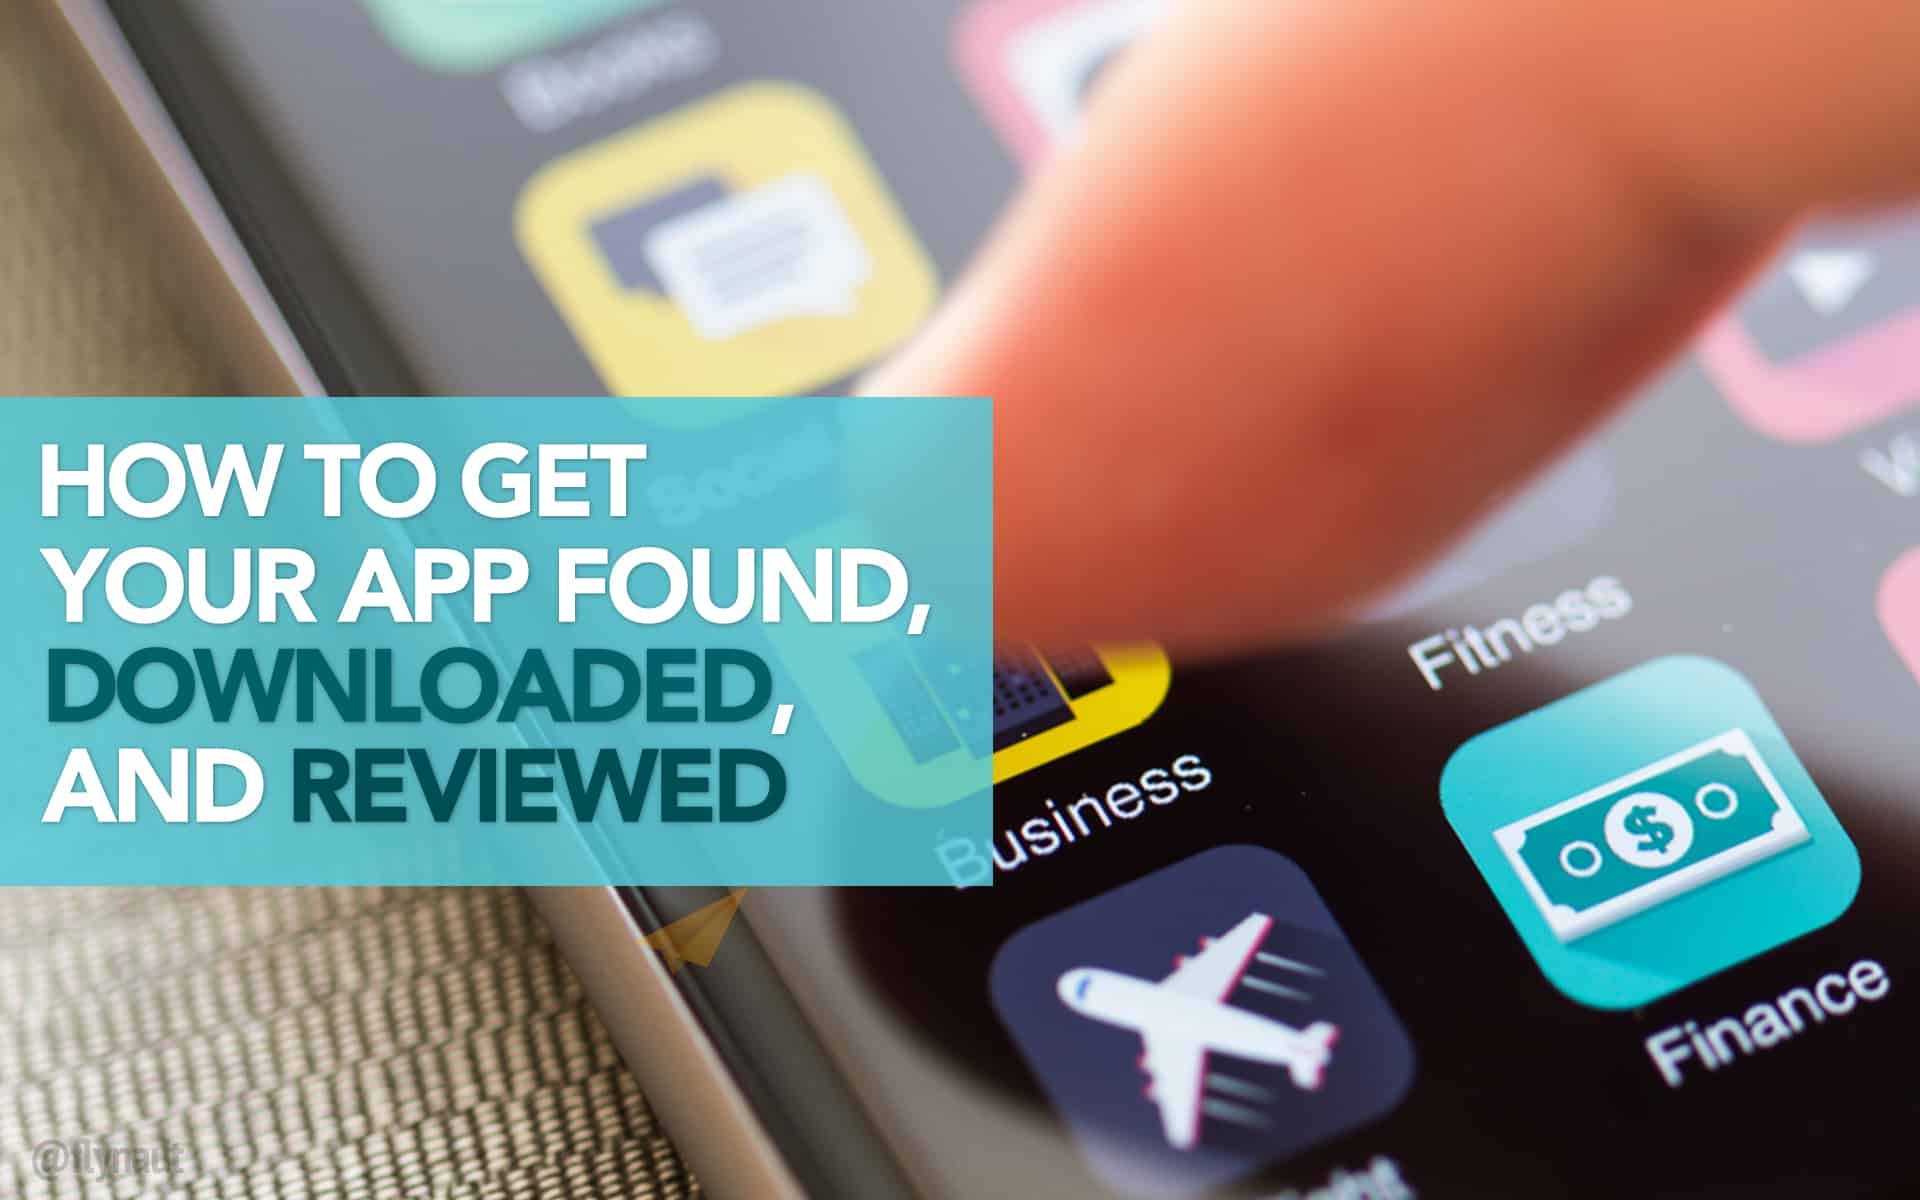 How to Get Your App Found, Downloaded, and Reviewed